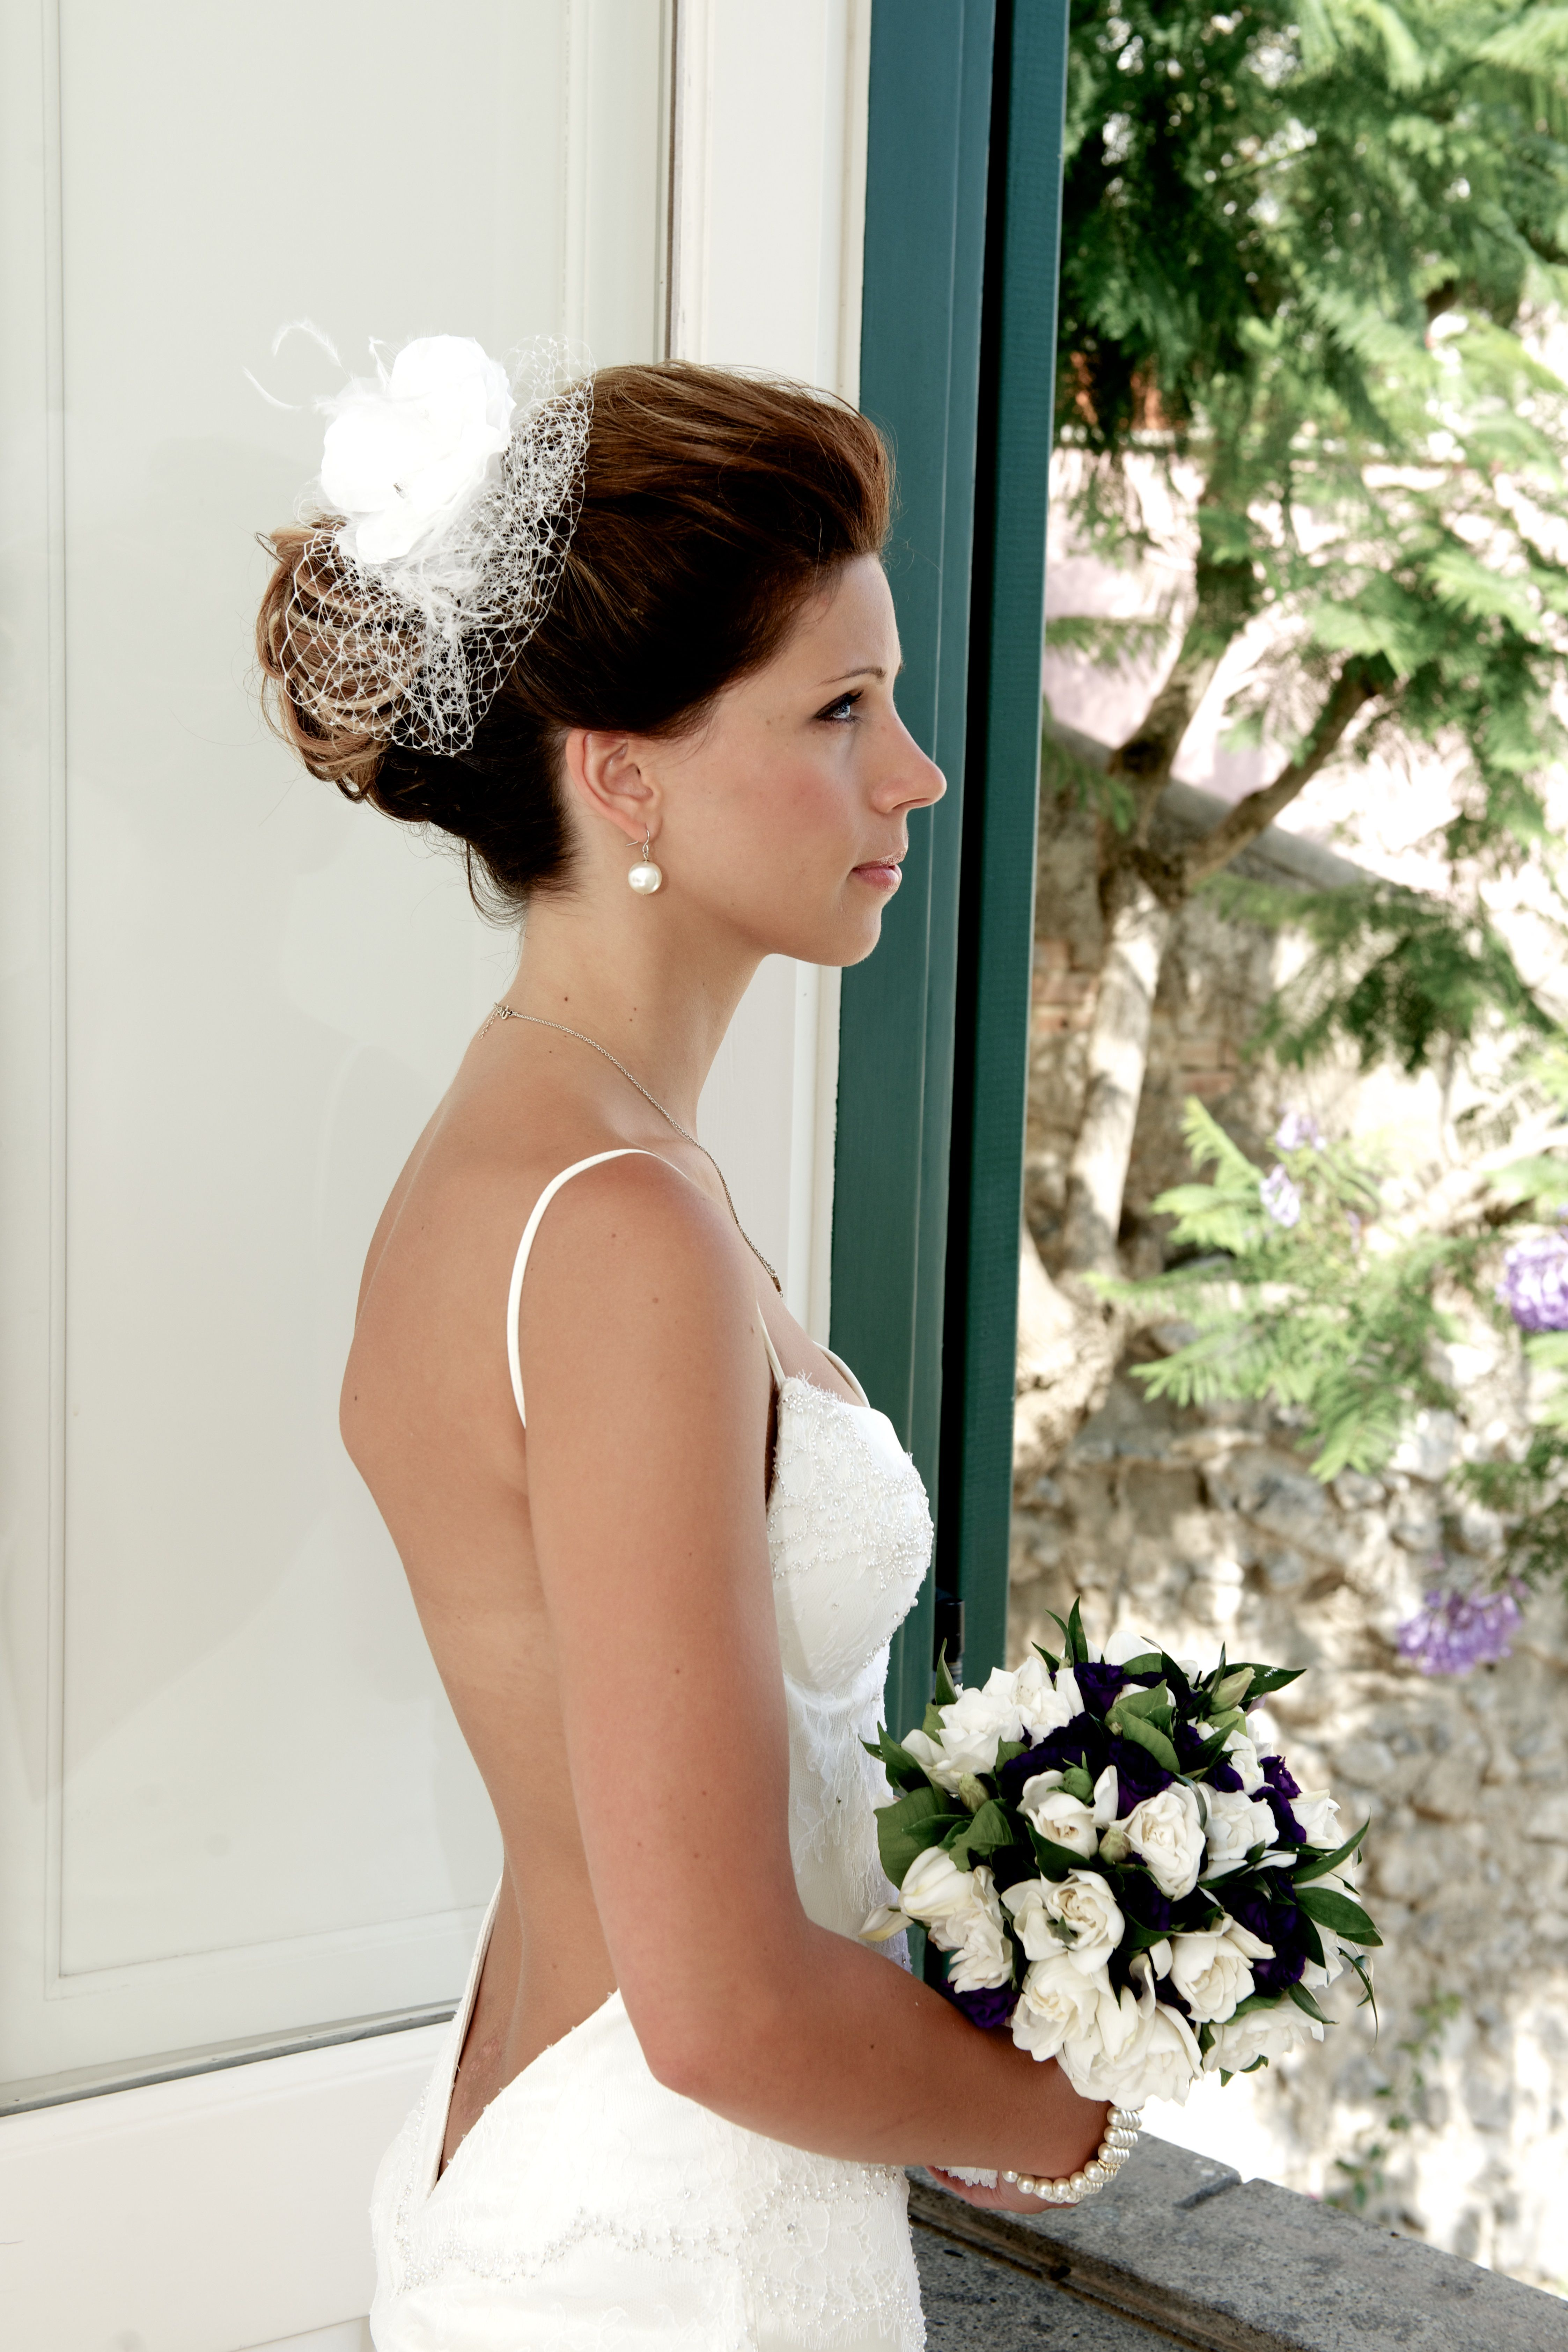 Young girls wedding dresses  Pretty Backless Wedding Dress by Chelsea Young  Wedding  Pinterest